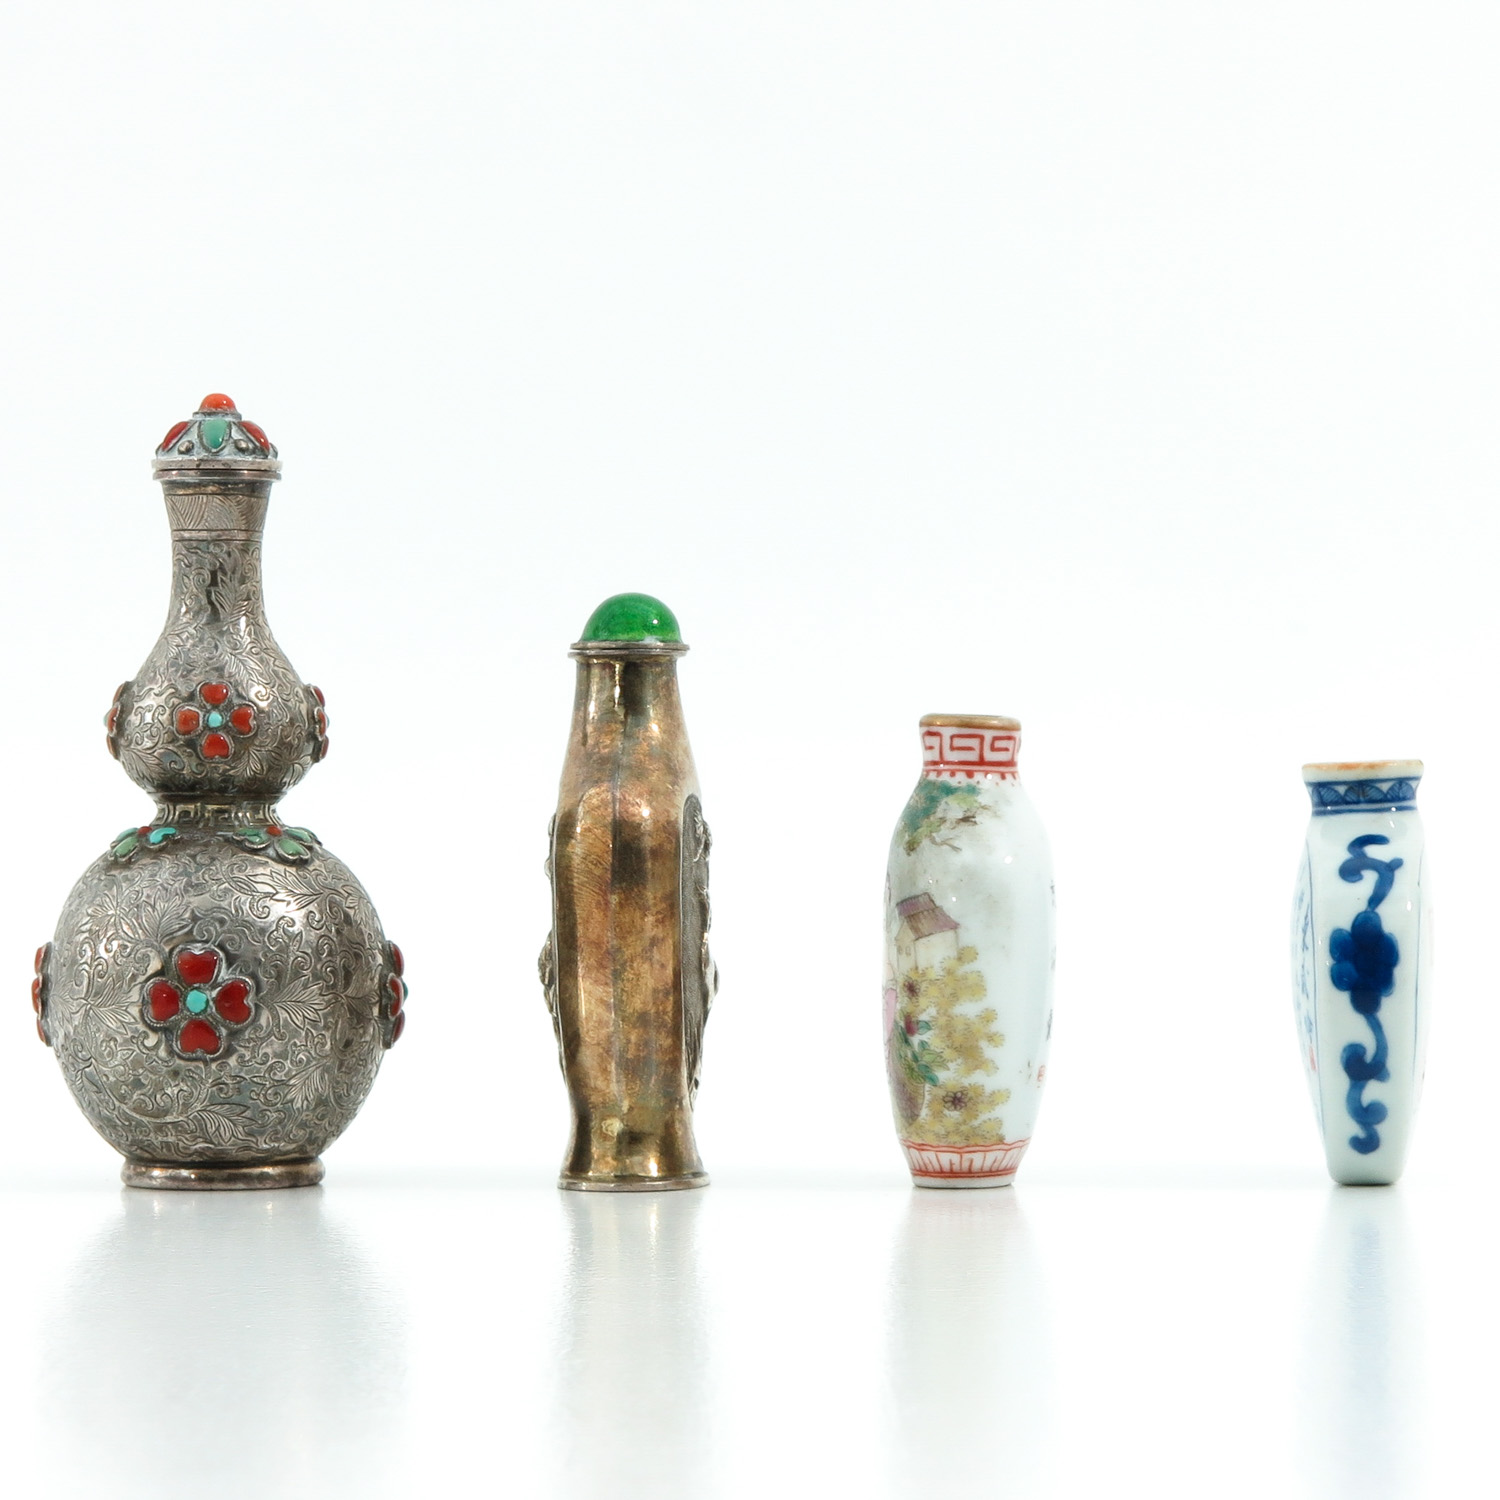 A Diverse Collection of 4 Snuff Bottles - Image 2 of 10